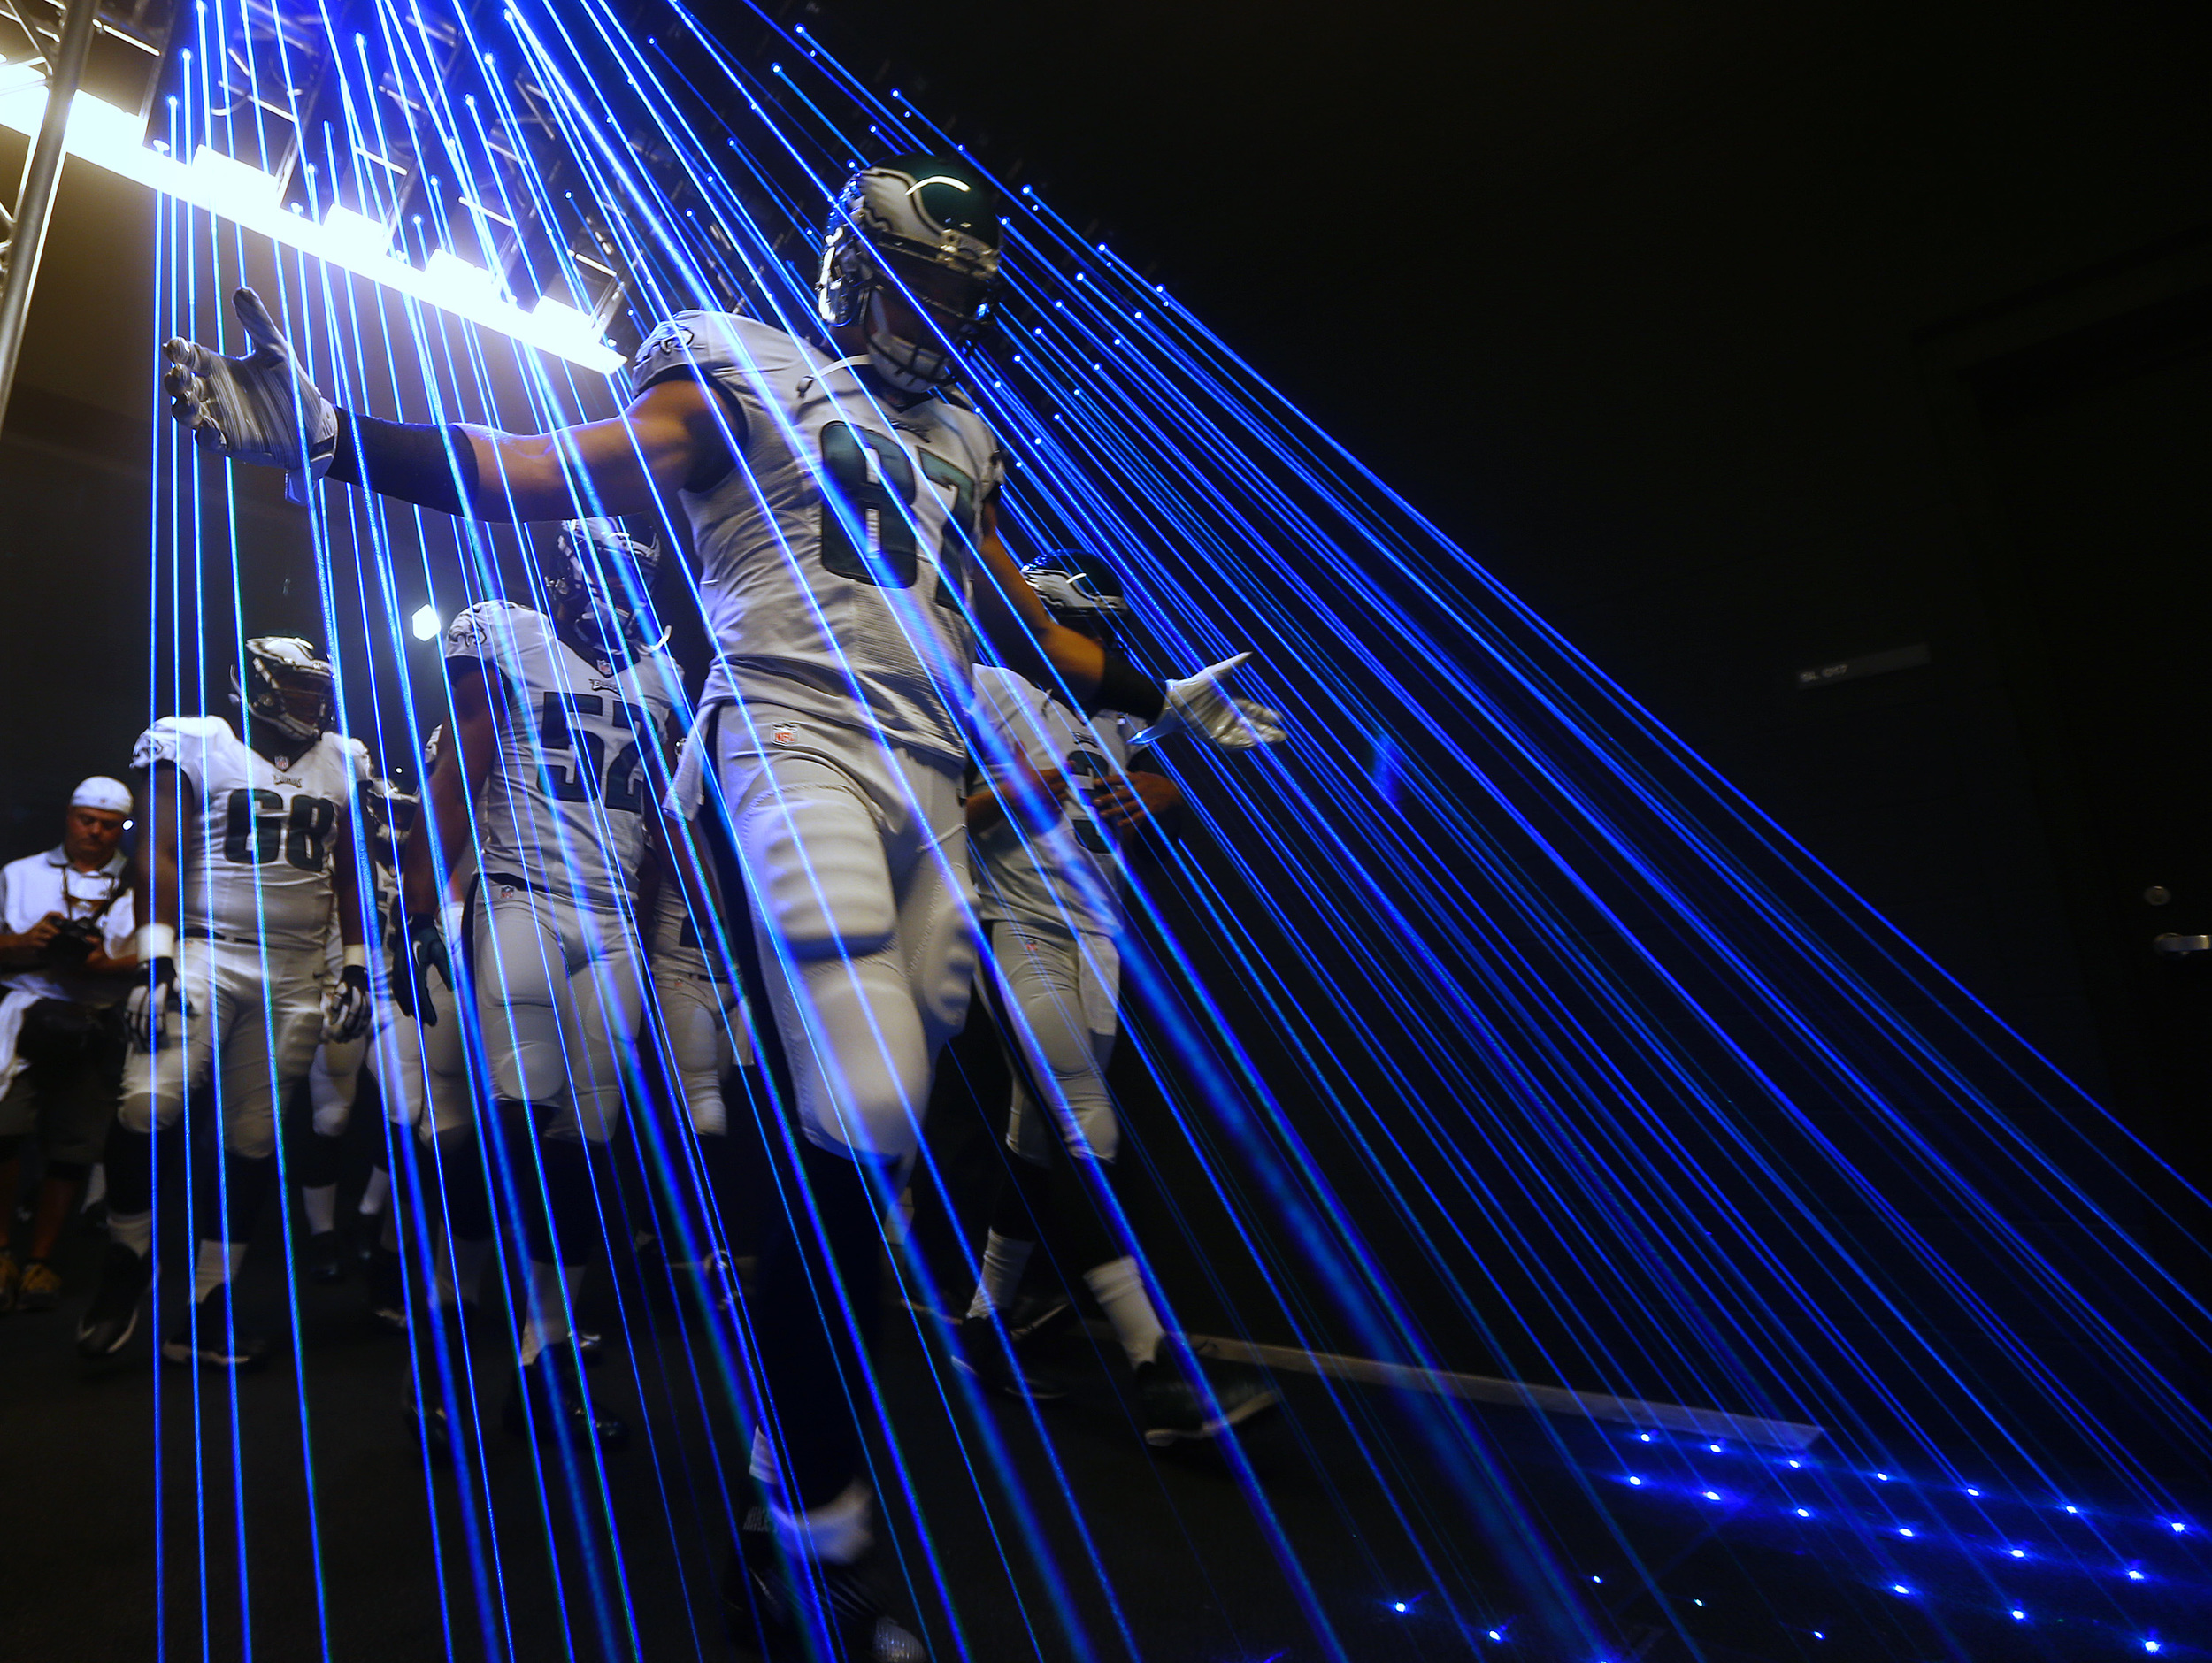 PHILADELPHIA, PA - SEPTEMBER 20: Brent Celek #87 of the Philadelphia Eagles leads his team out of the tunnel before a football game against the Dallas Cowboys at Lincoln Financial Field on September 20, 2015 in Philadelphia, Pennsylvania.